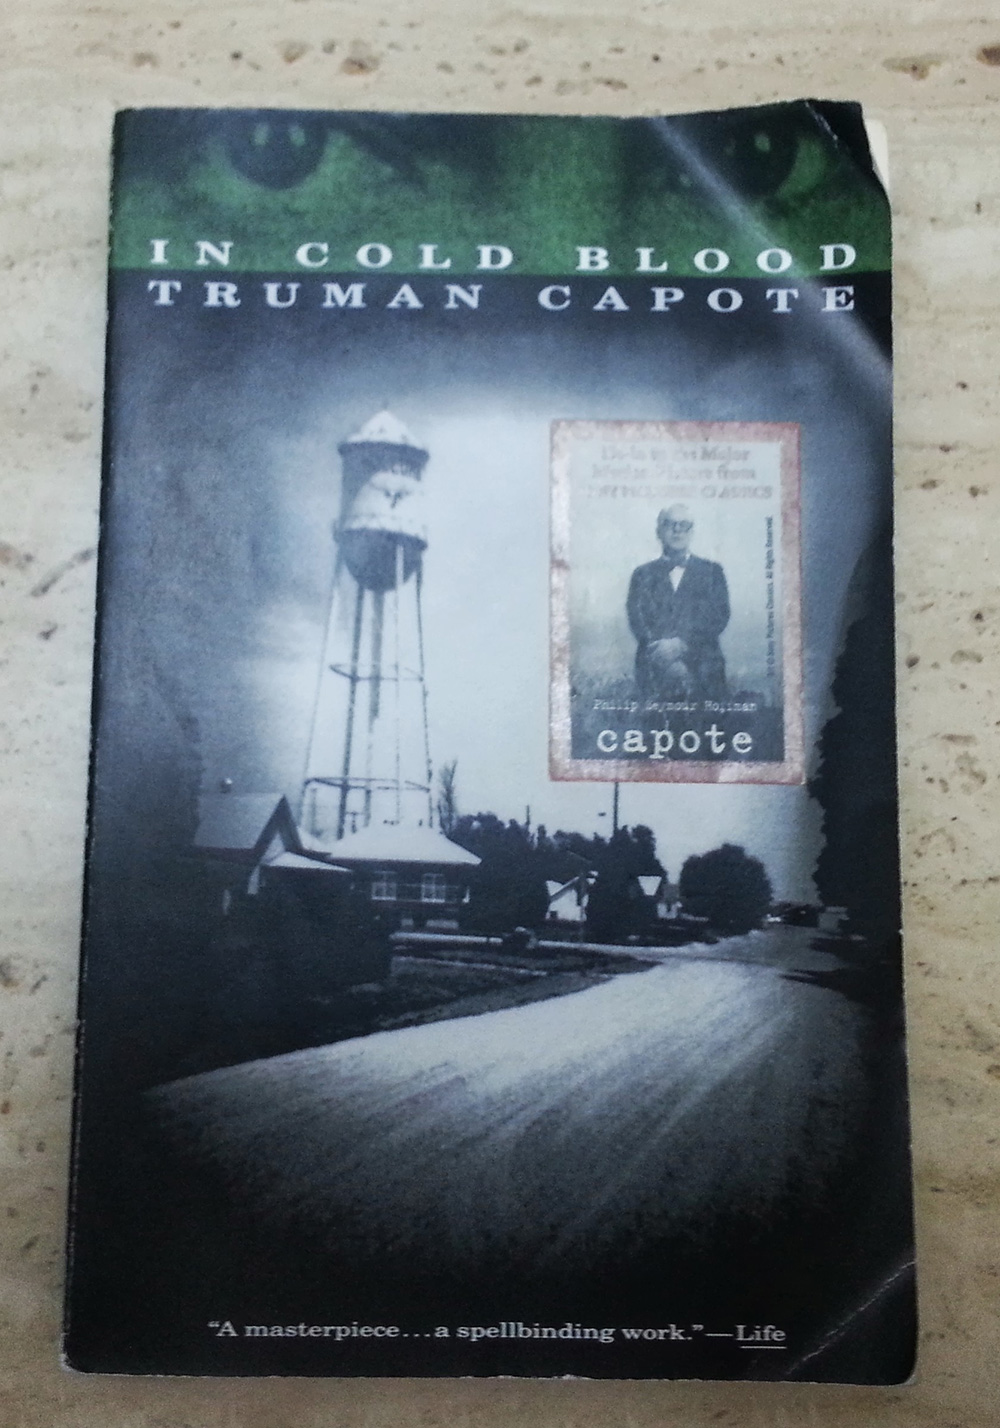 in cold blood by truman capote research paper Blood research cold in paper truman capotefree capote in cold blood essays and papers - 123helpmefree capote in cold blood papers, albeit after six years of research.